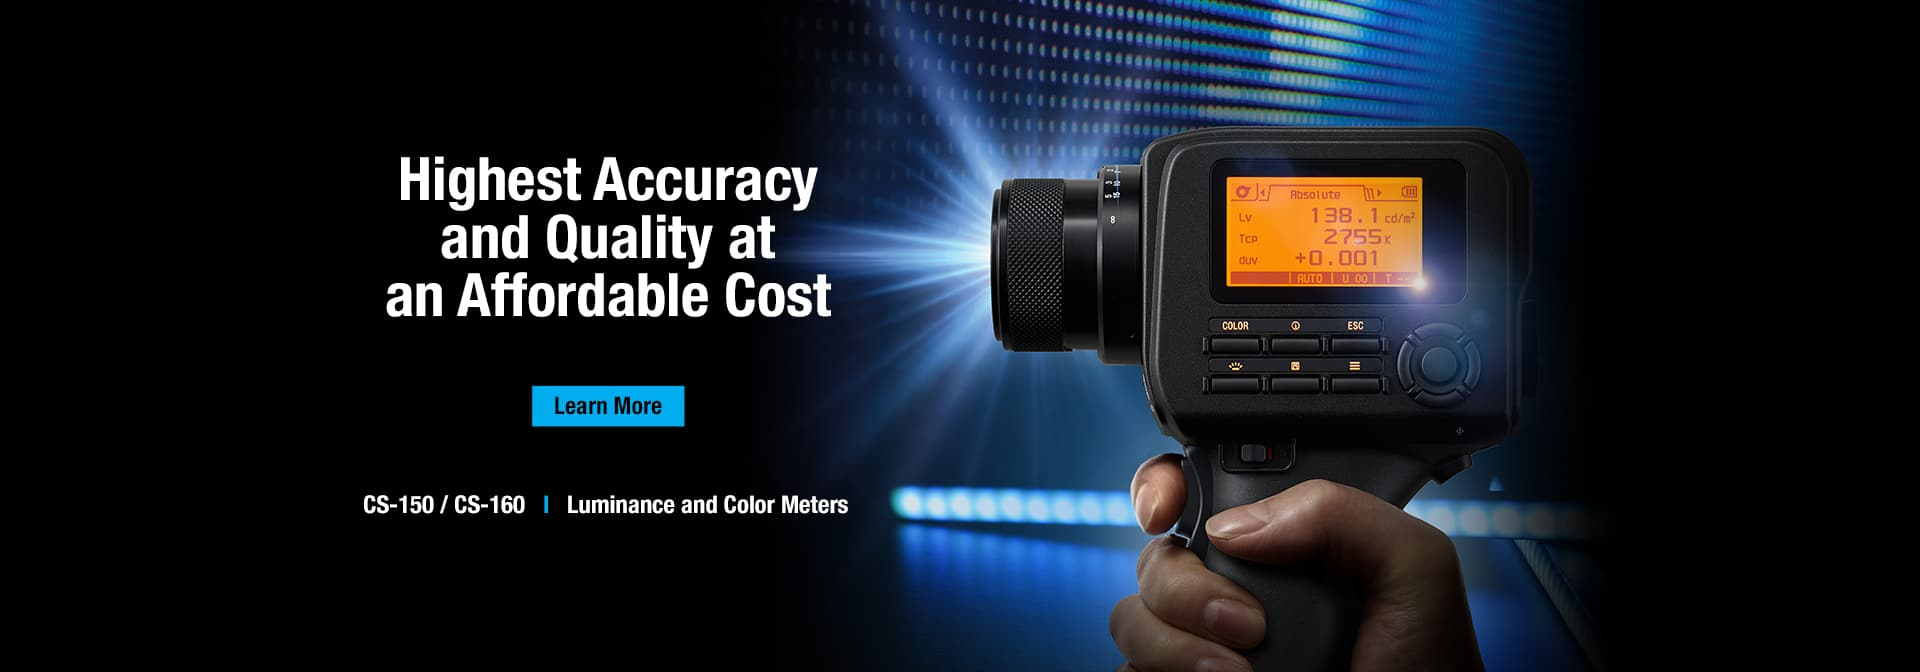 CS-150 or CS-160 Luminance and Color Meters